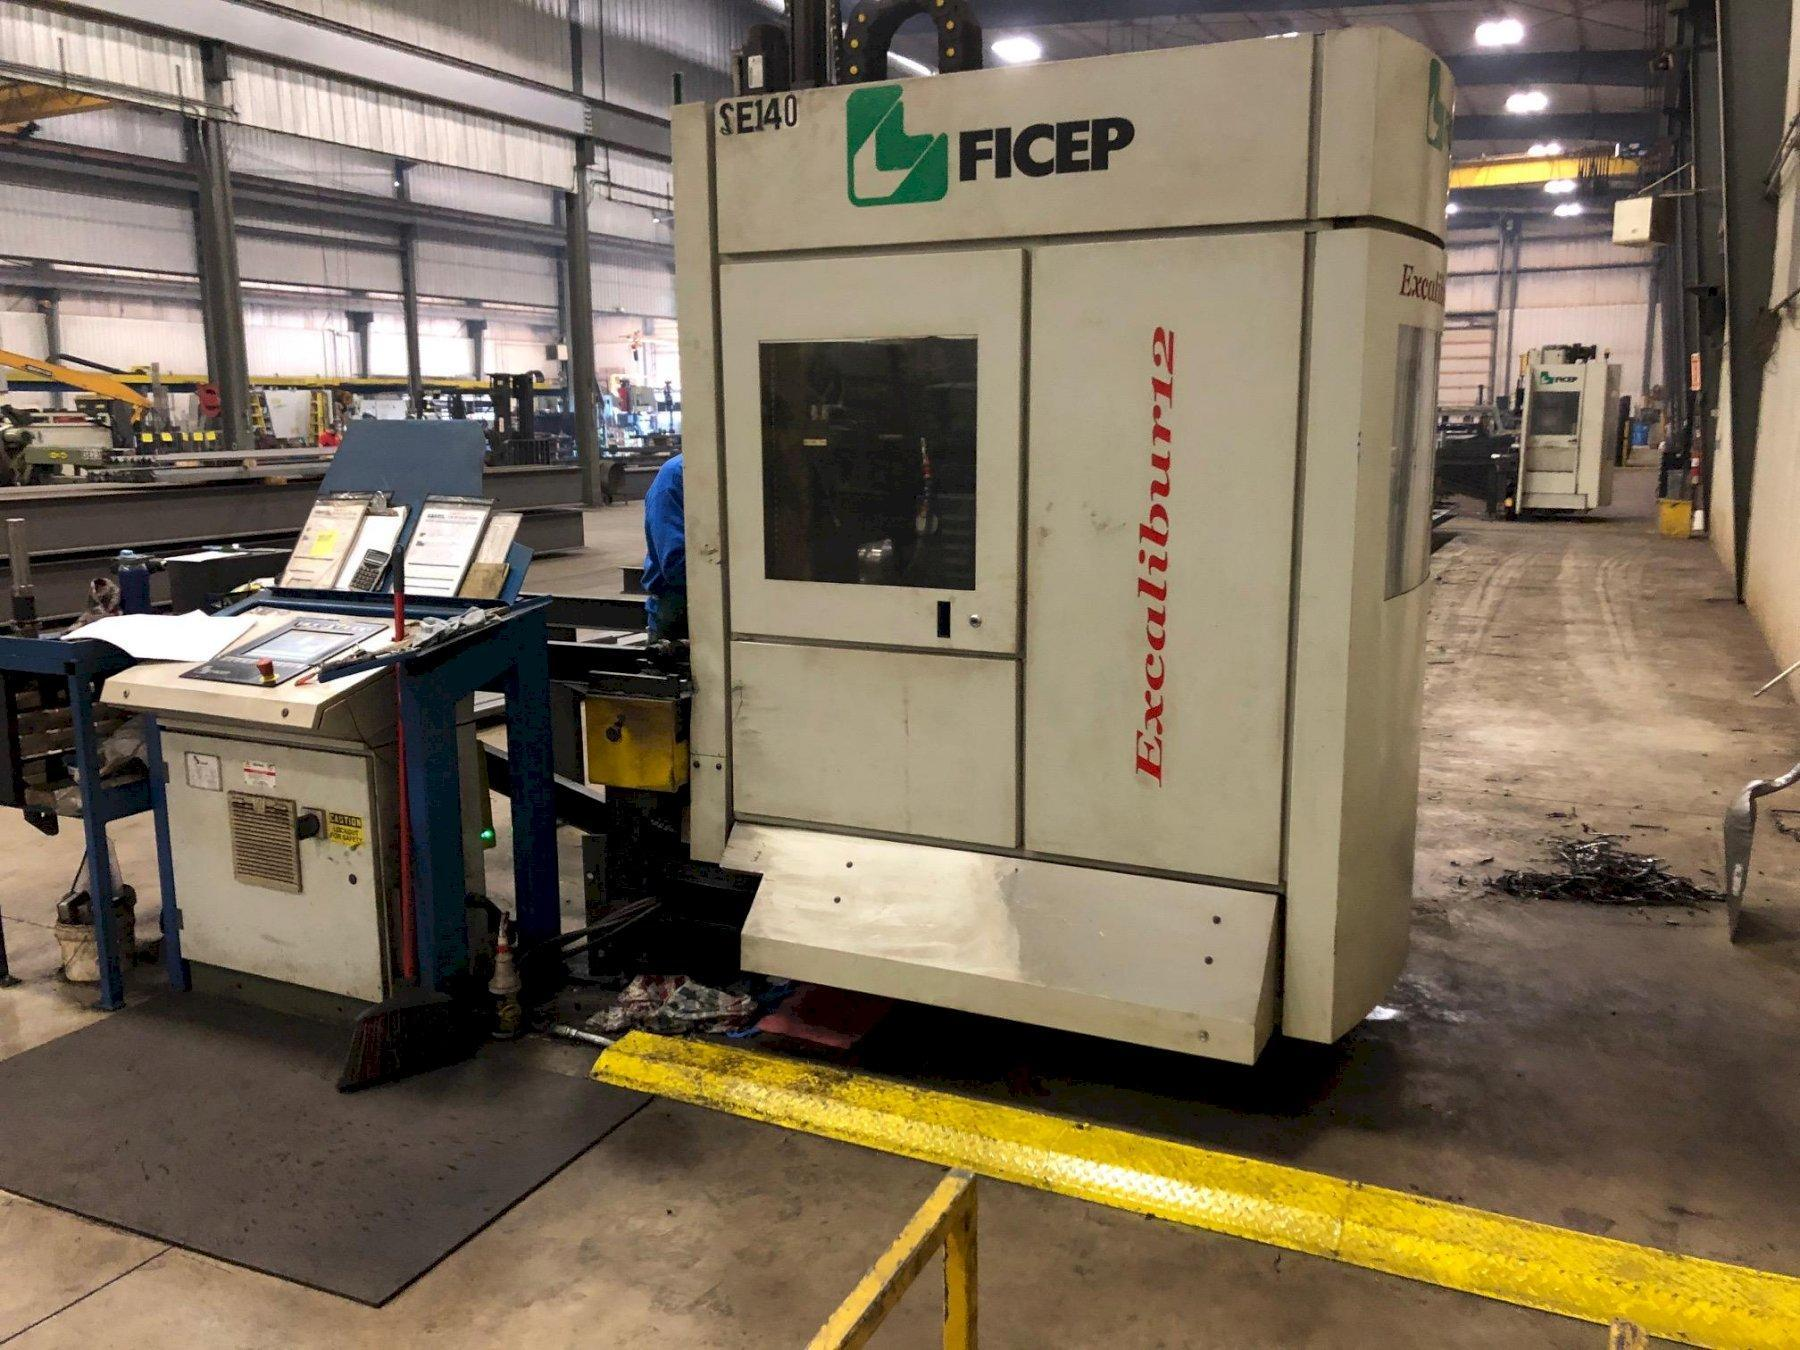 2013 FICEP EXCALIBUR 12 SINGLE SPINDLE DRILL LINE. STOCK # 0520021